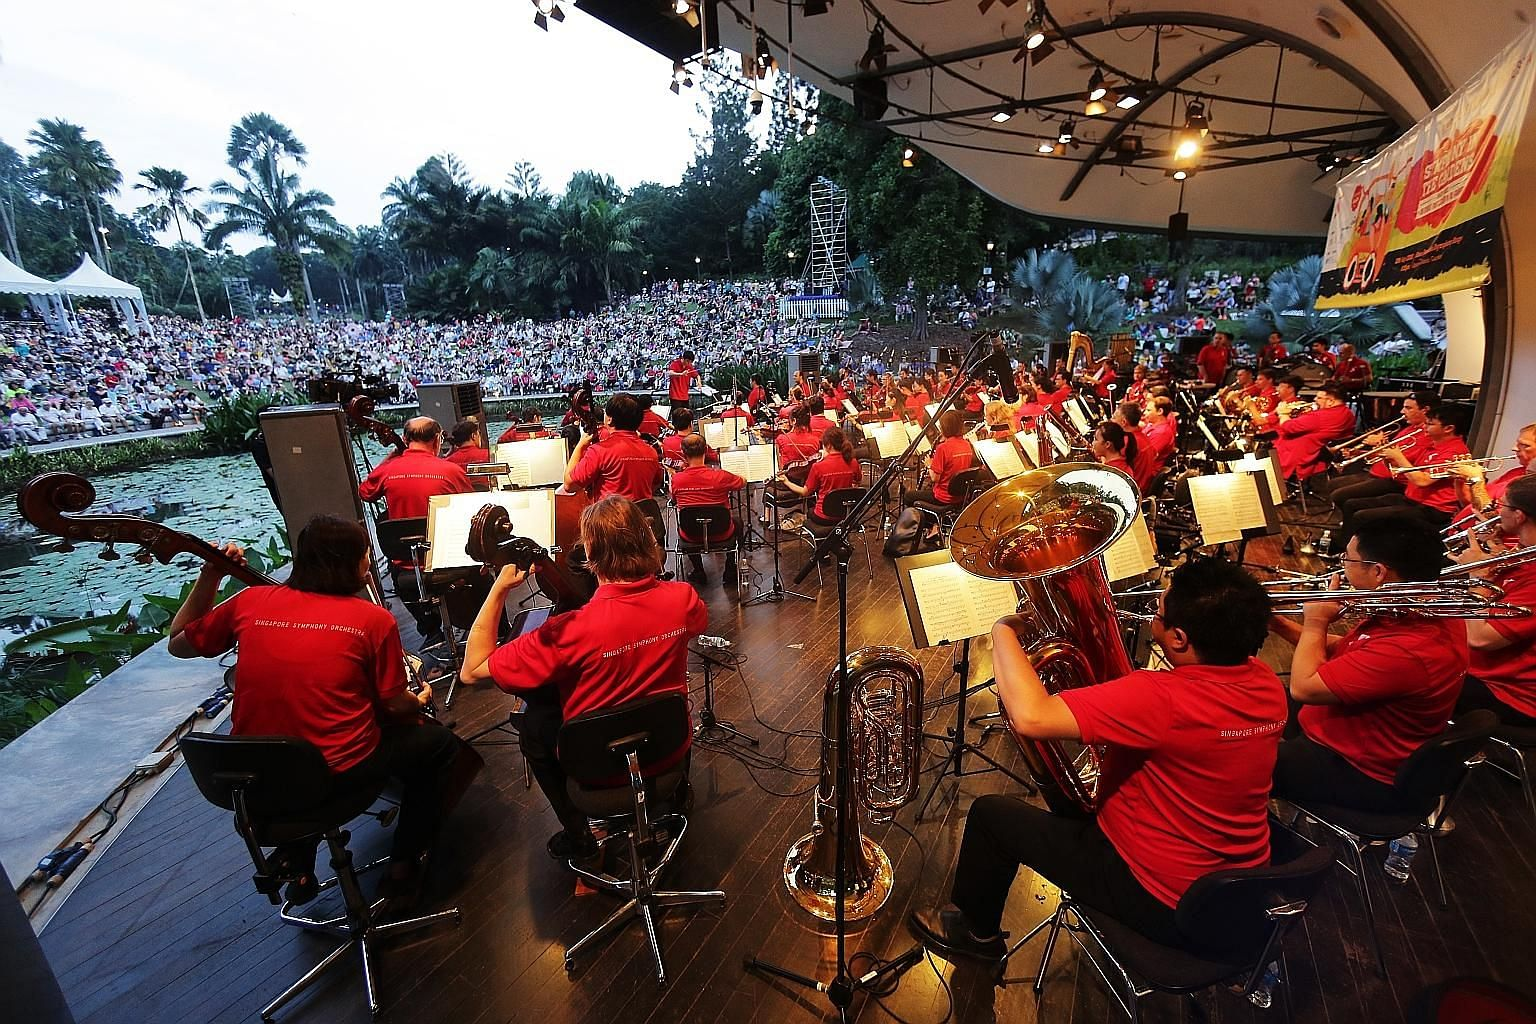 The SSO gives free performances at the Botanic Gardens quite often, and this has helped the orchestra reach those who may not usually go to its ticketed concerts, says its executive officer.